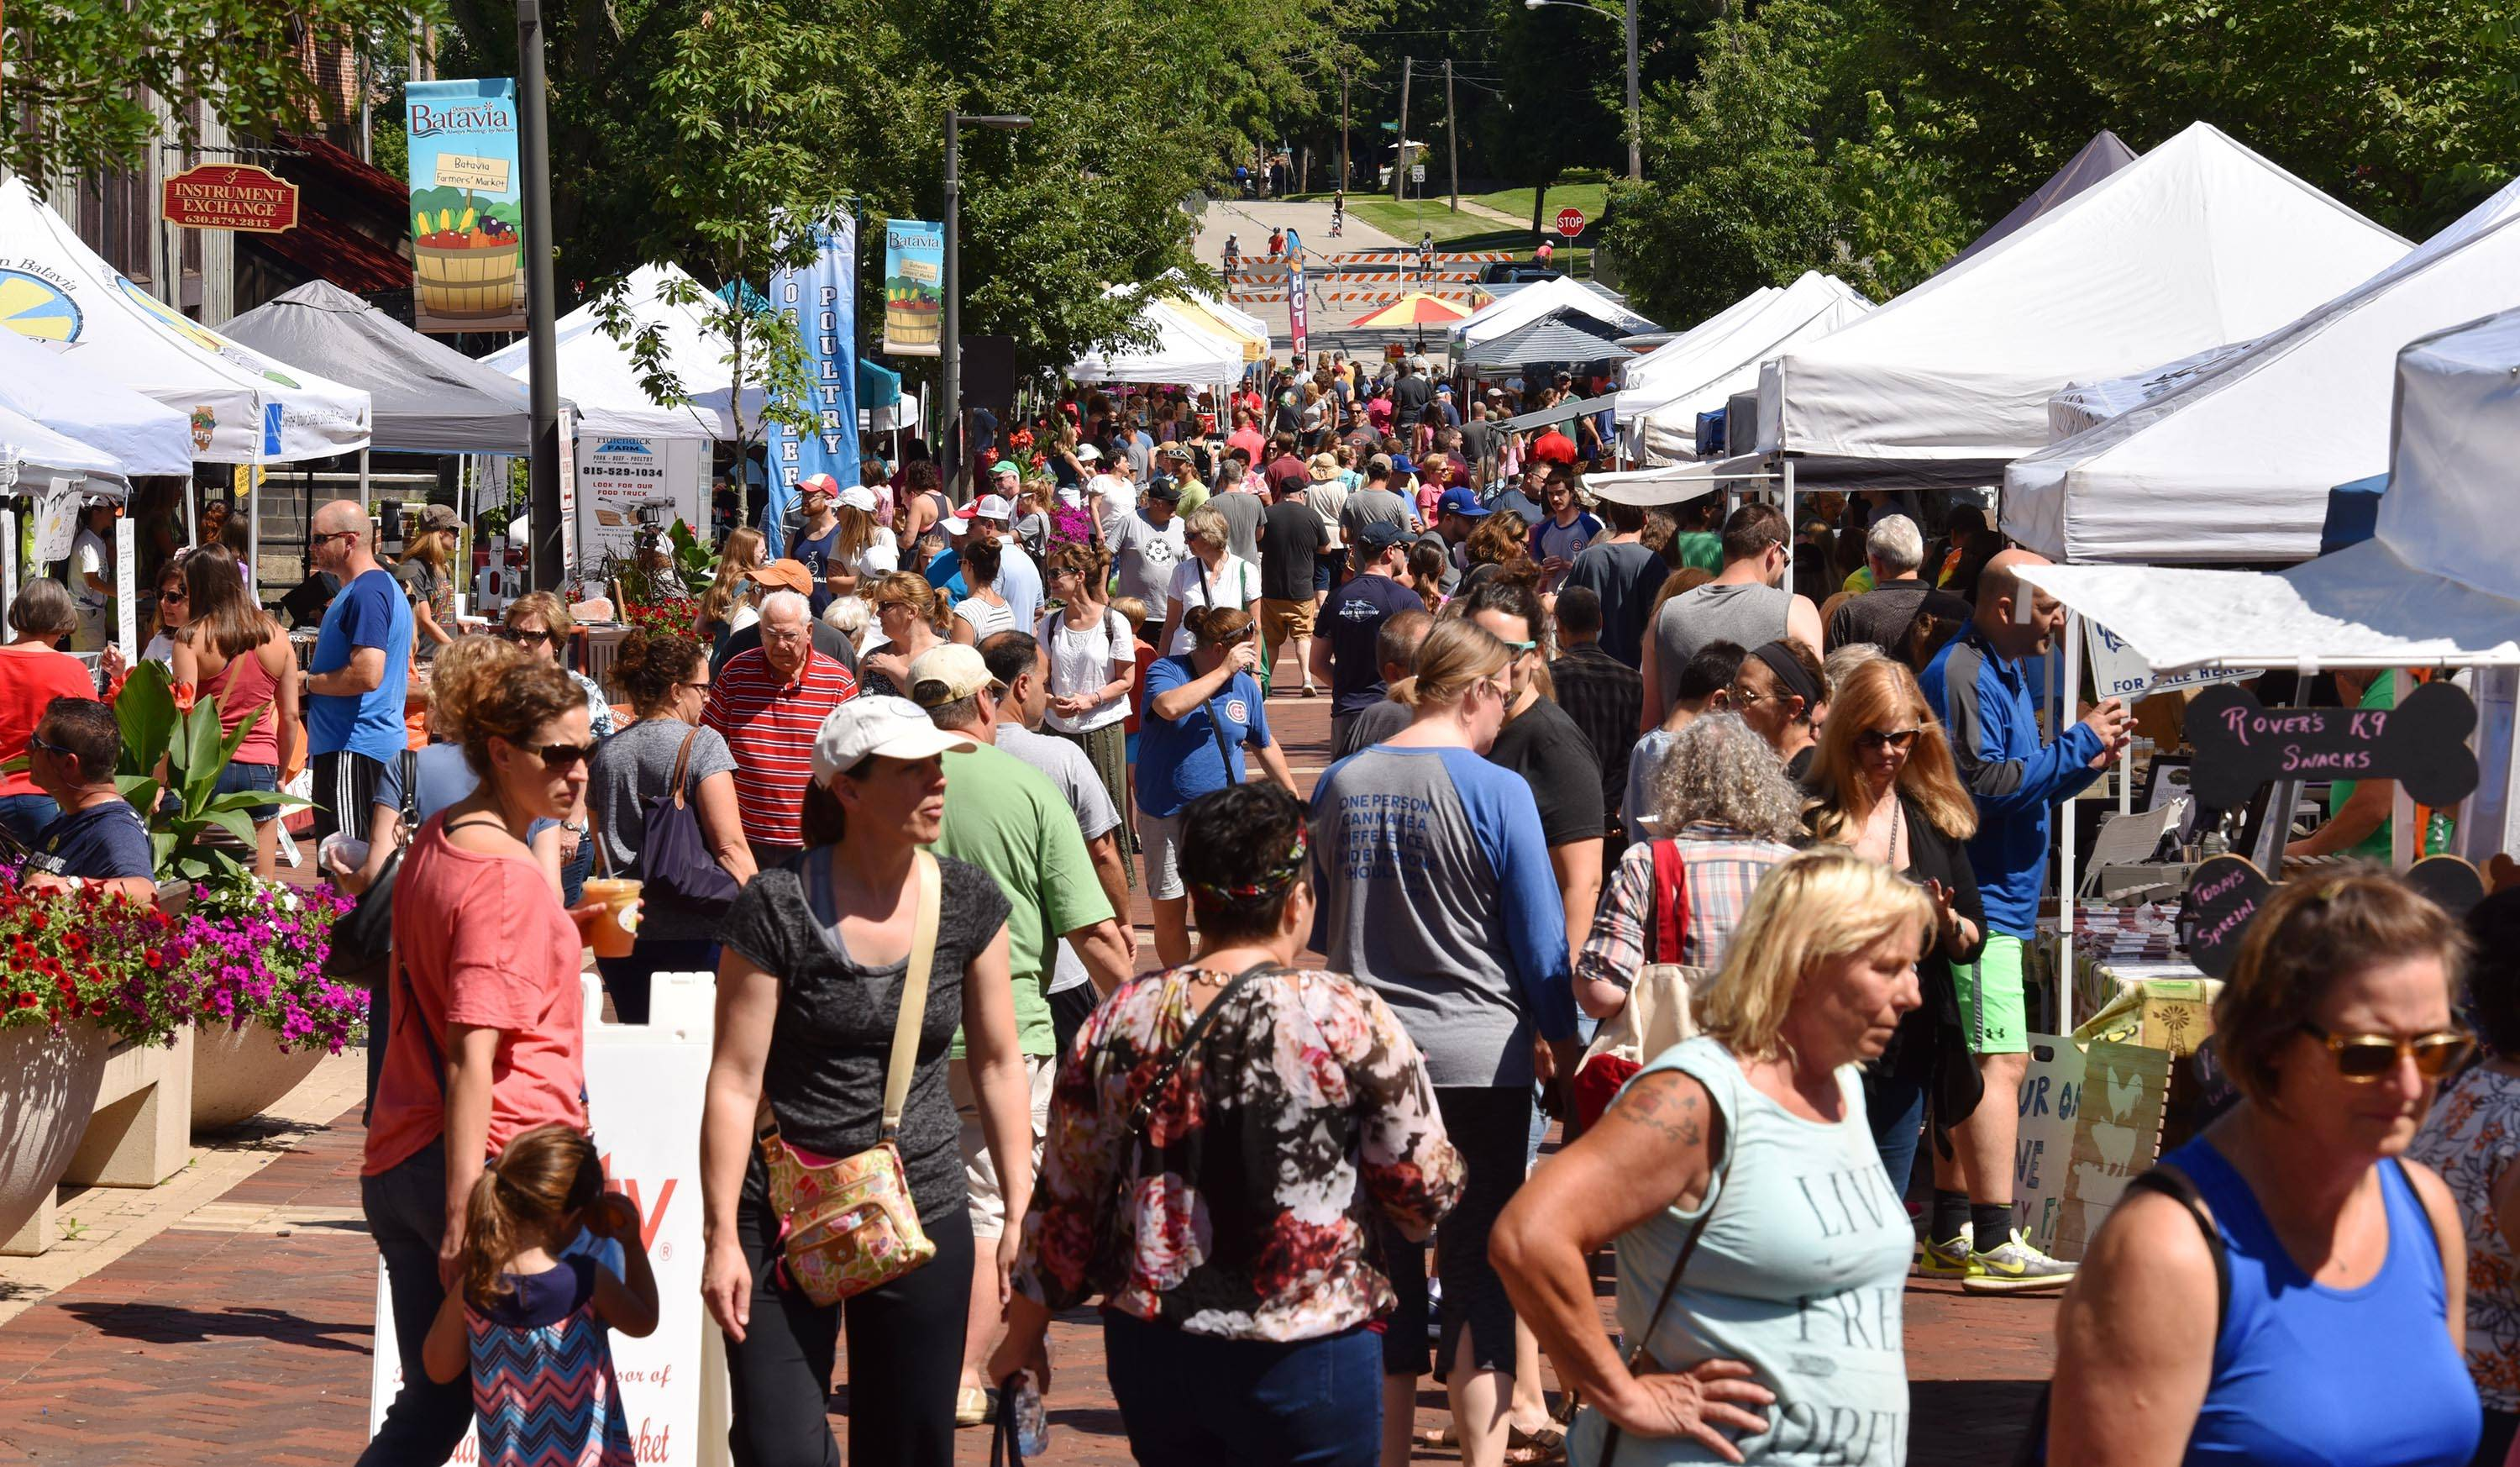 North River Street in Batavia was filled all morning with people strolling through the farmers market Saturday. The event is held every Saturday, 8 a.m. to noon, through Oct. 27.